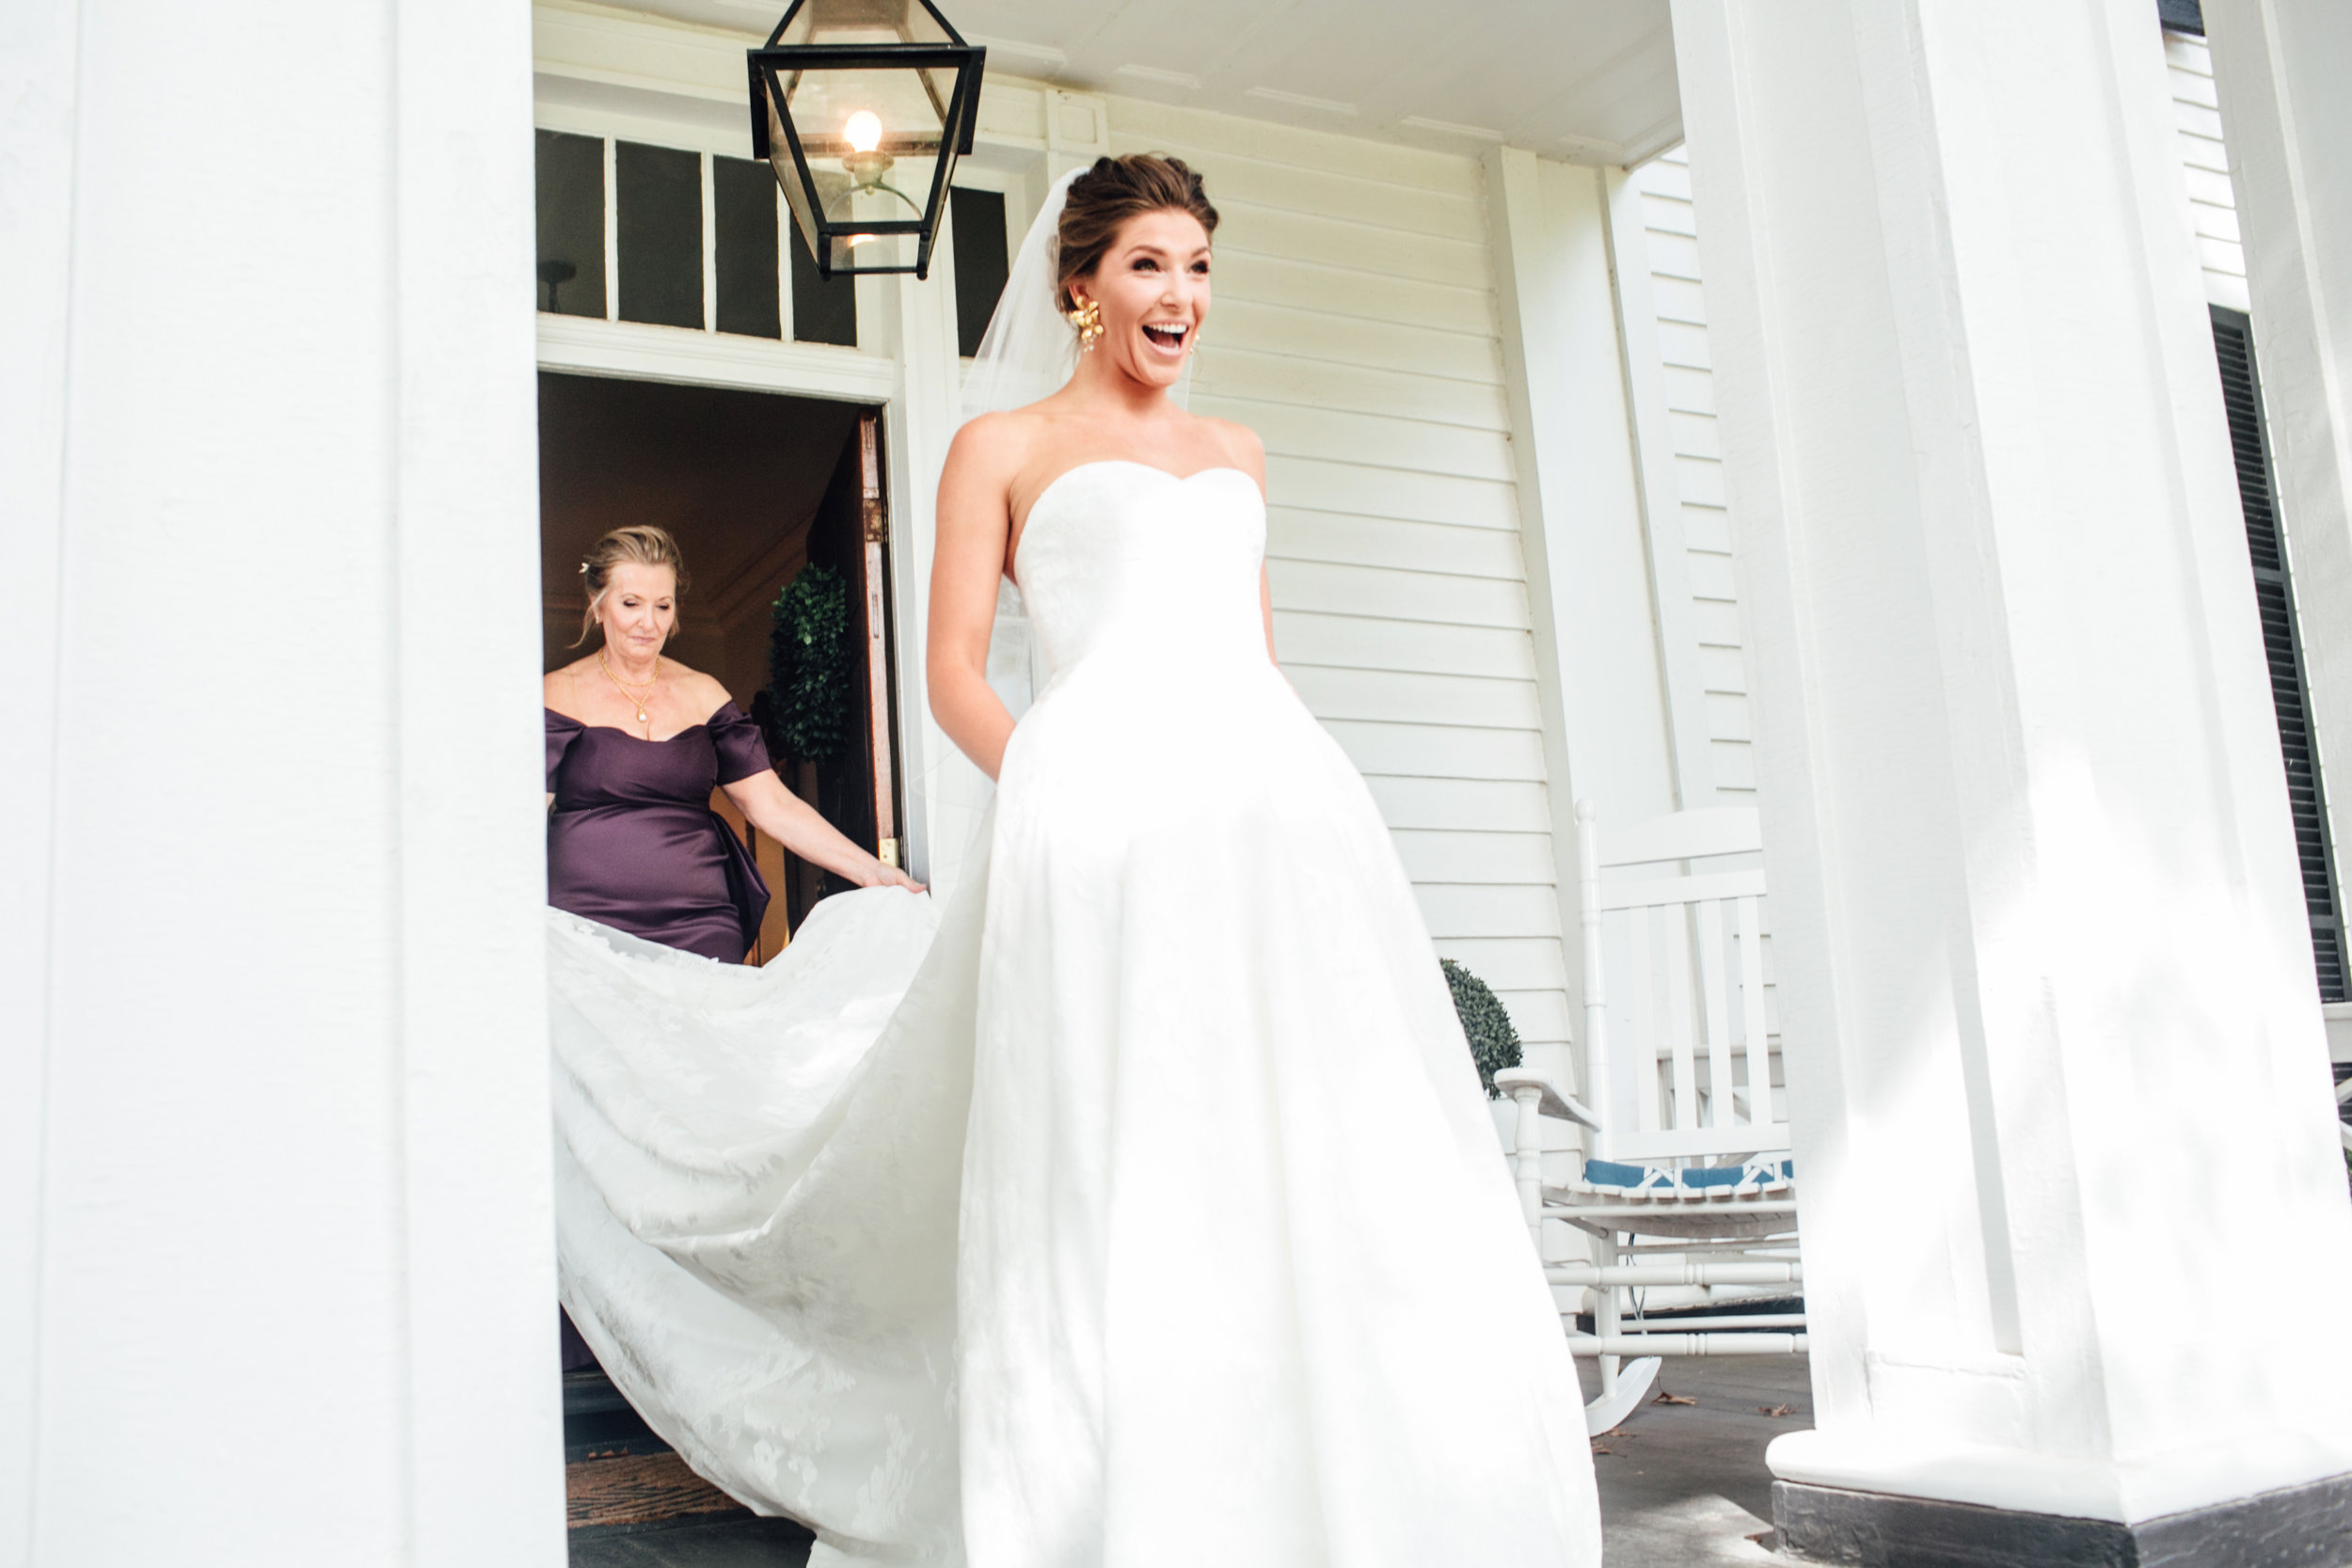 KatieStoopsPhotography-charlottesville wedding-farm wedding05.jpg